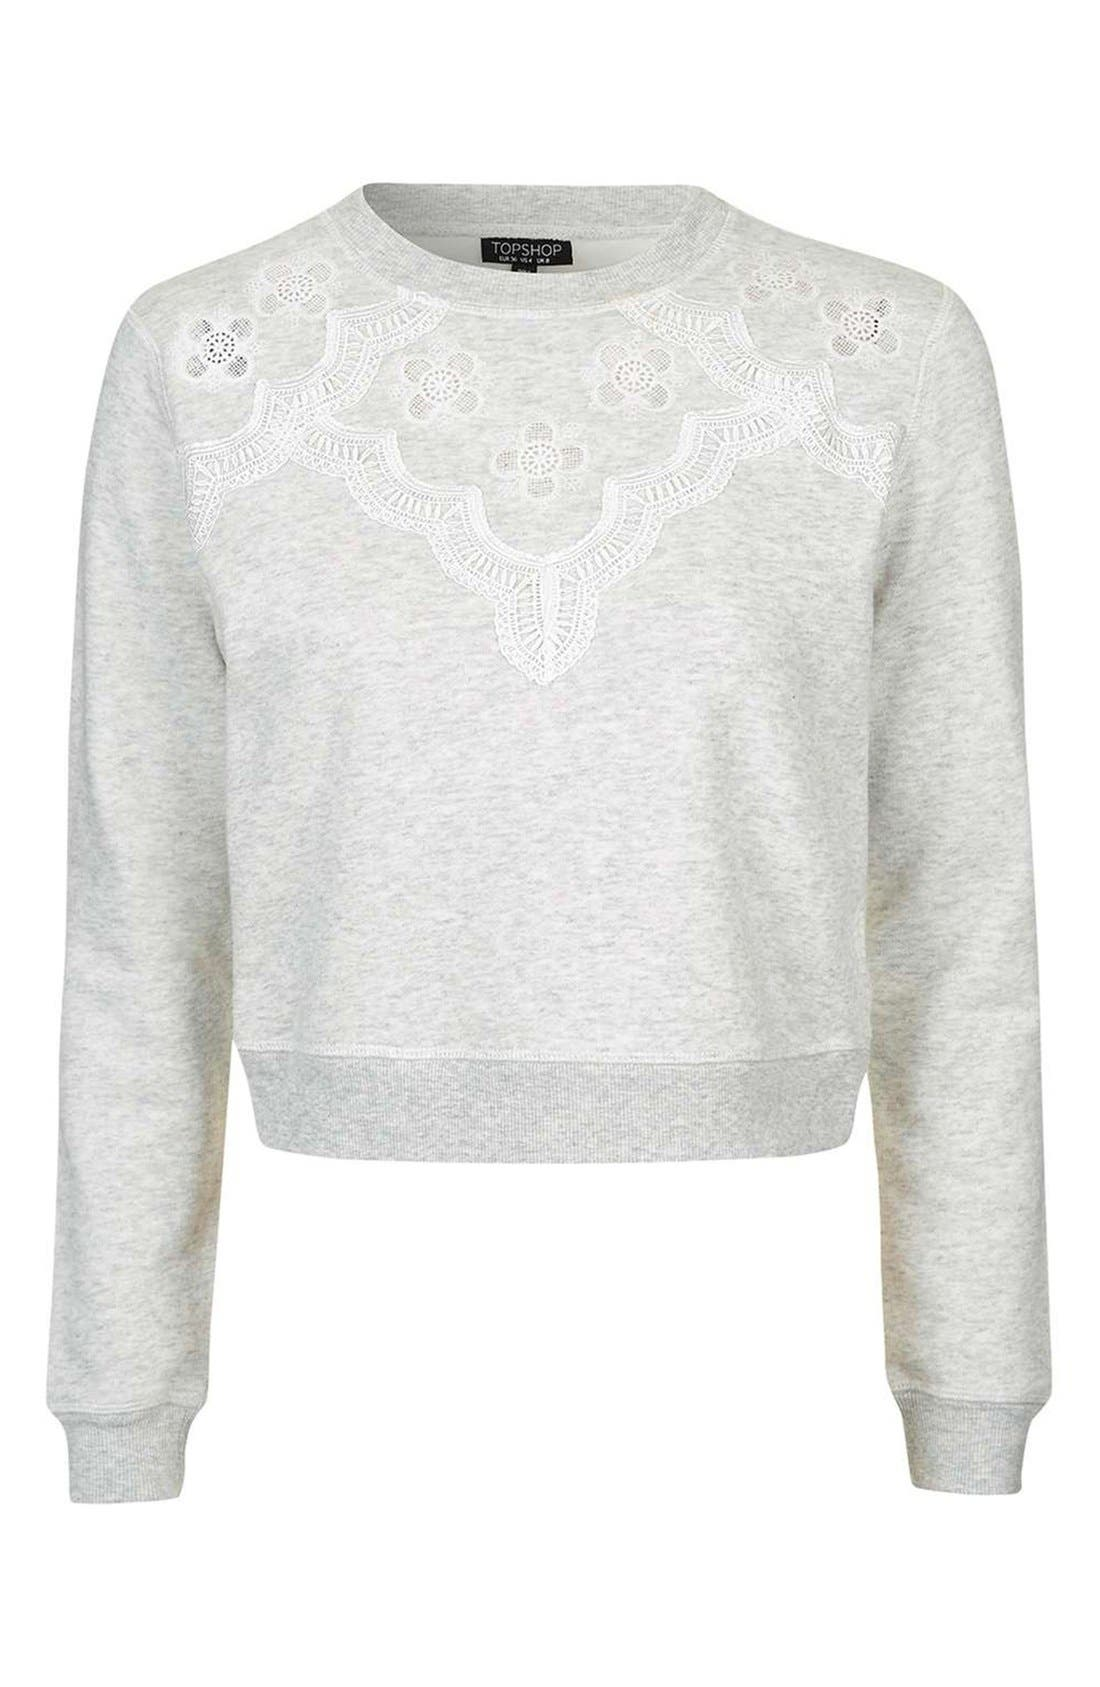 Alternate Image 4  - Topshop Crochet Daisy Sweatshirt